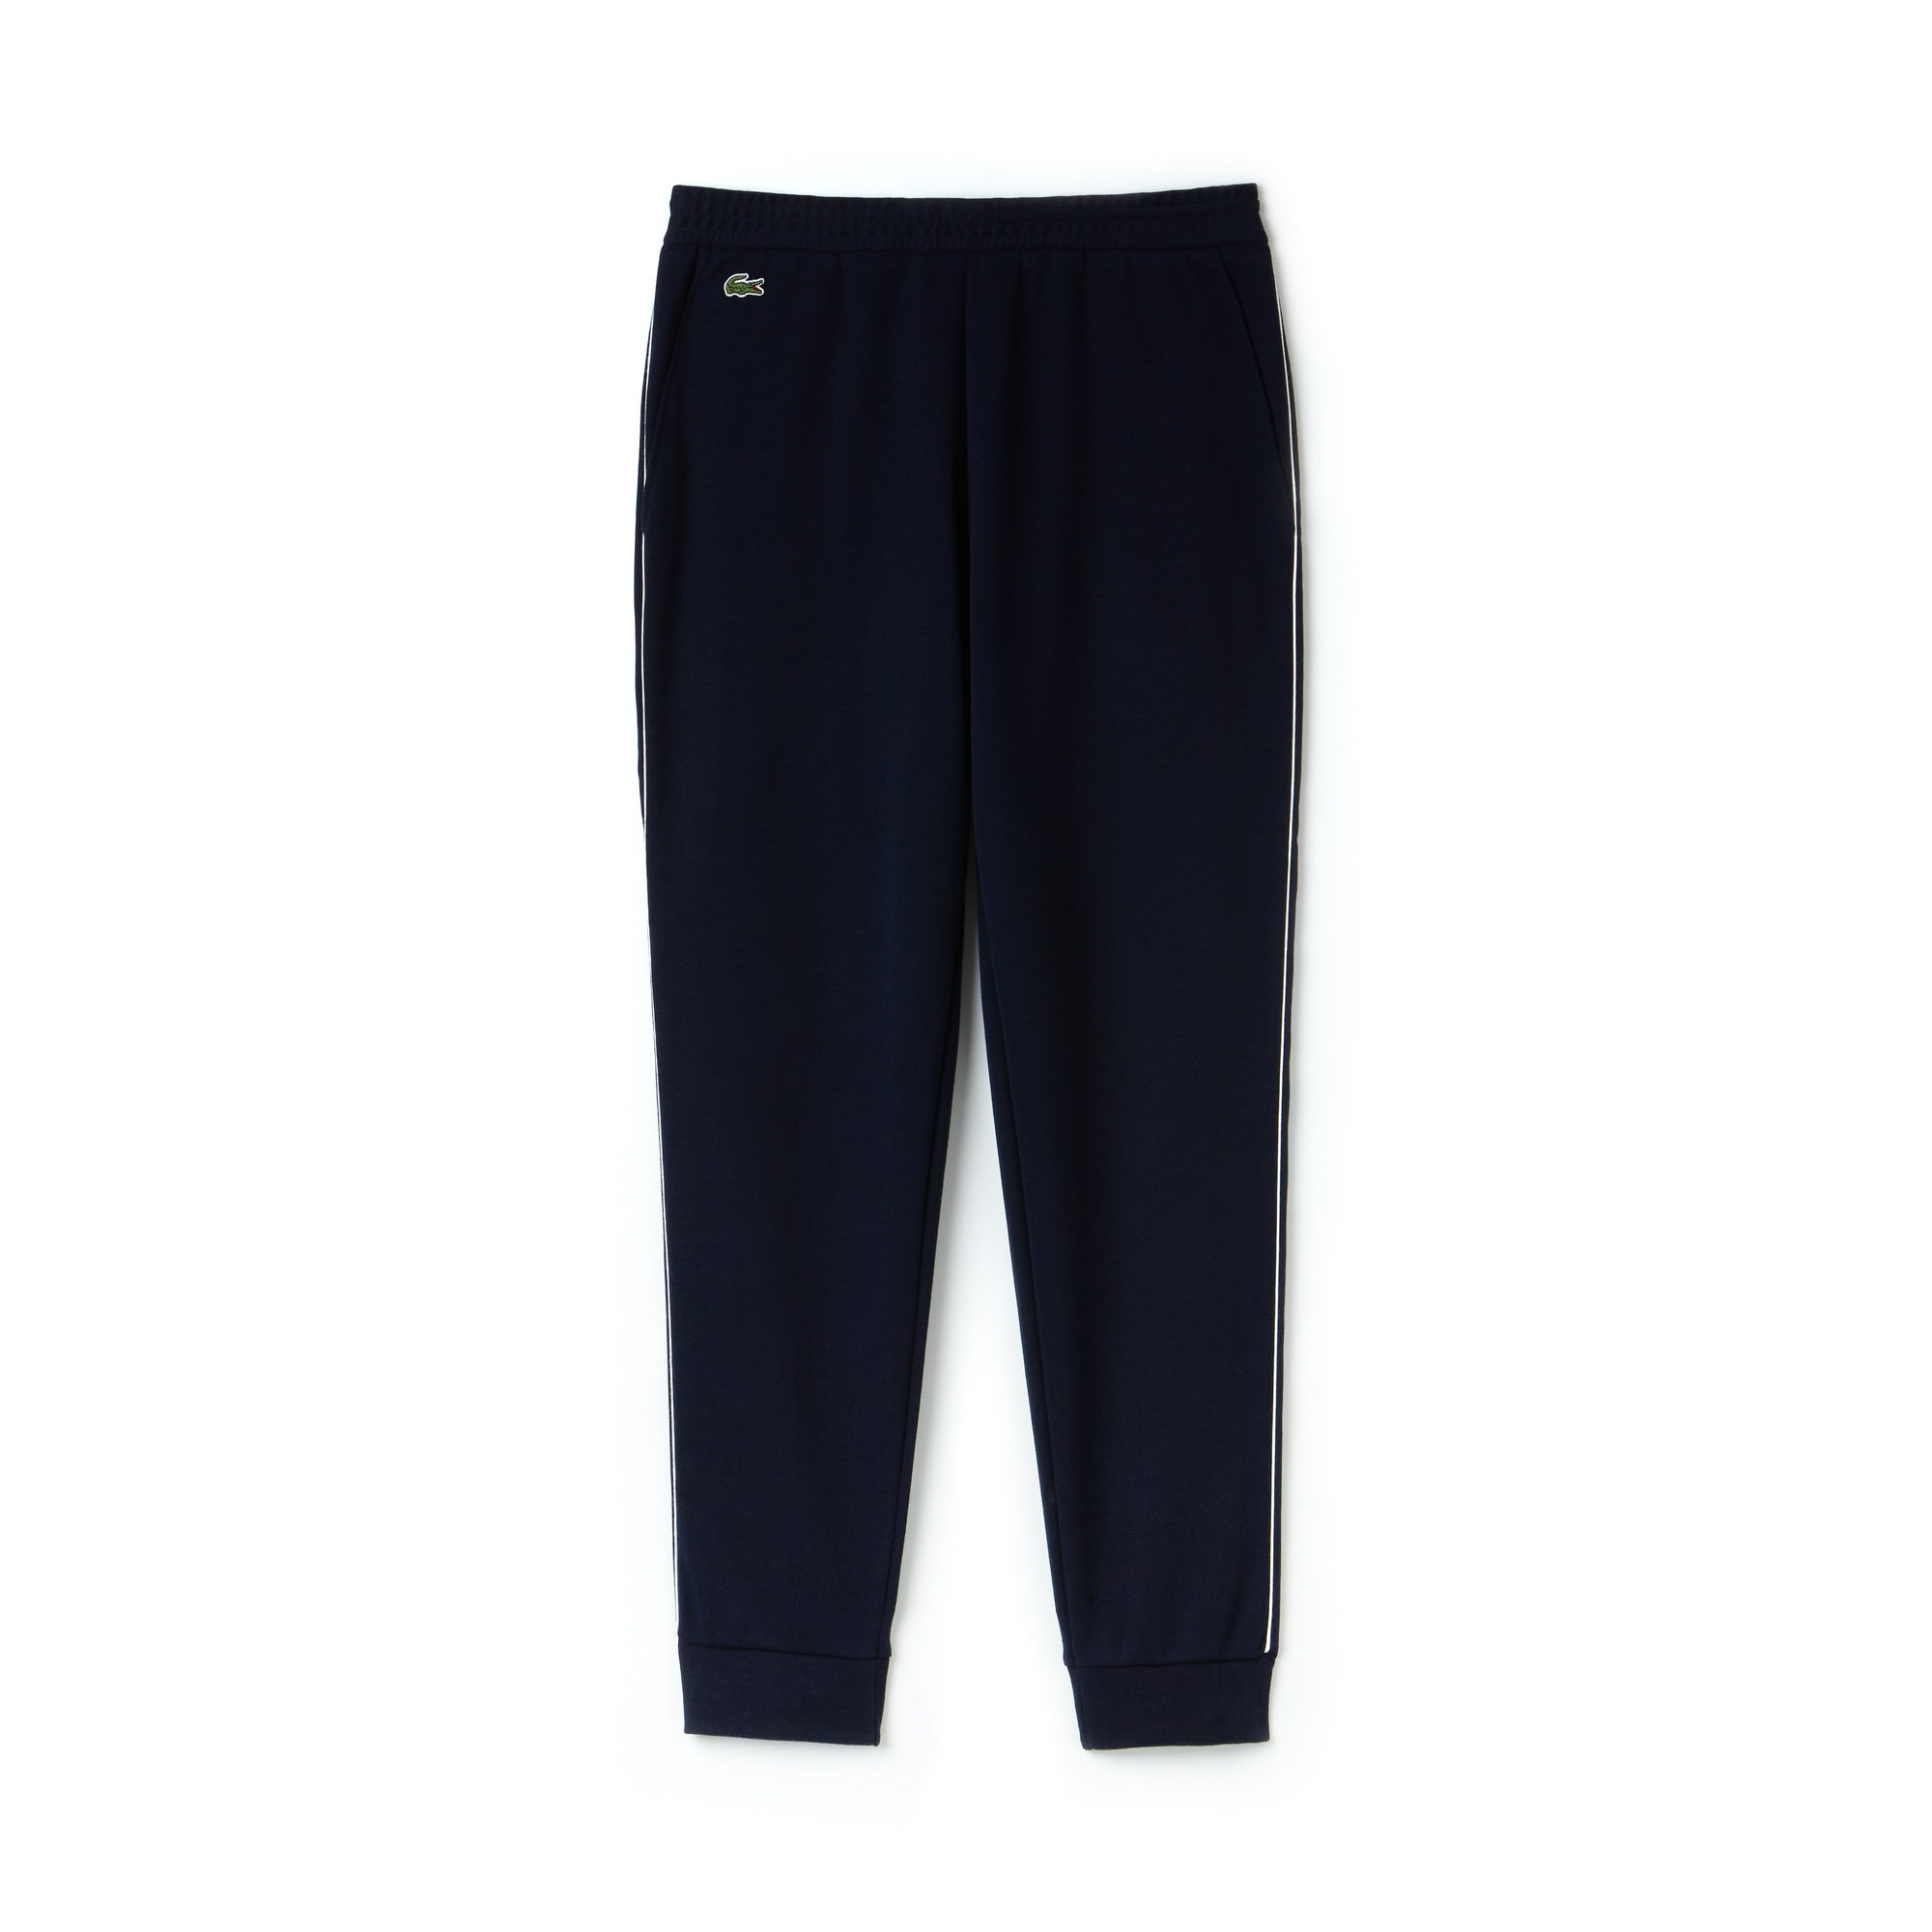 Men's Milano Cotton Urban Jogging Pants